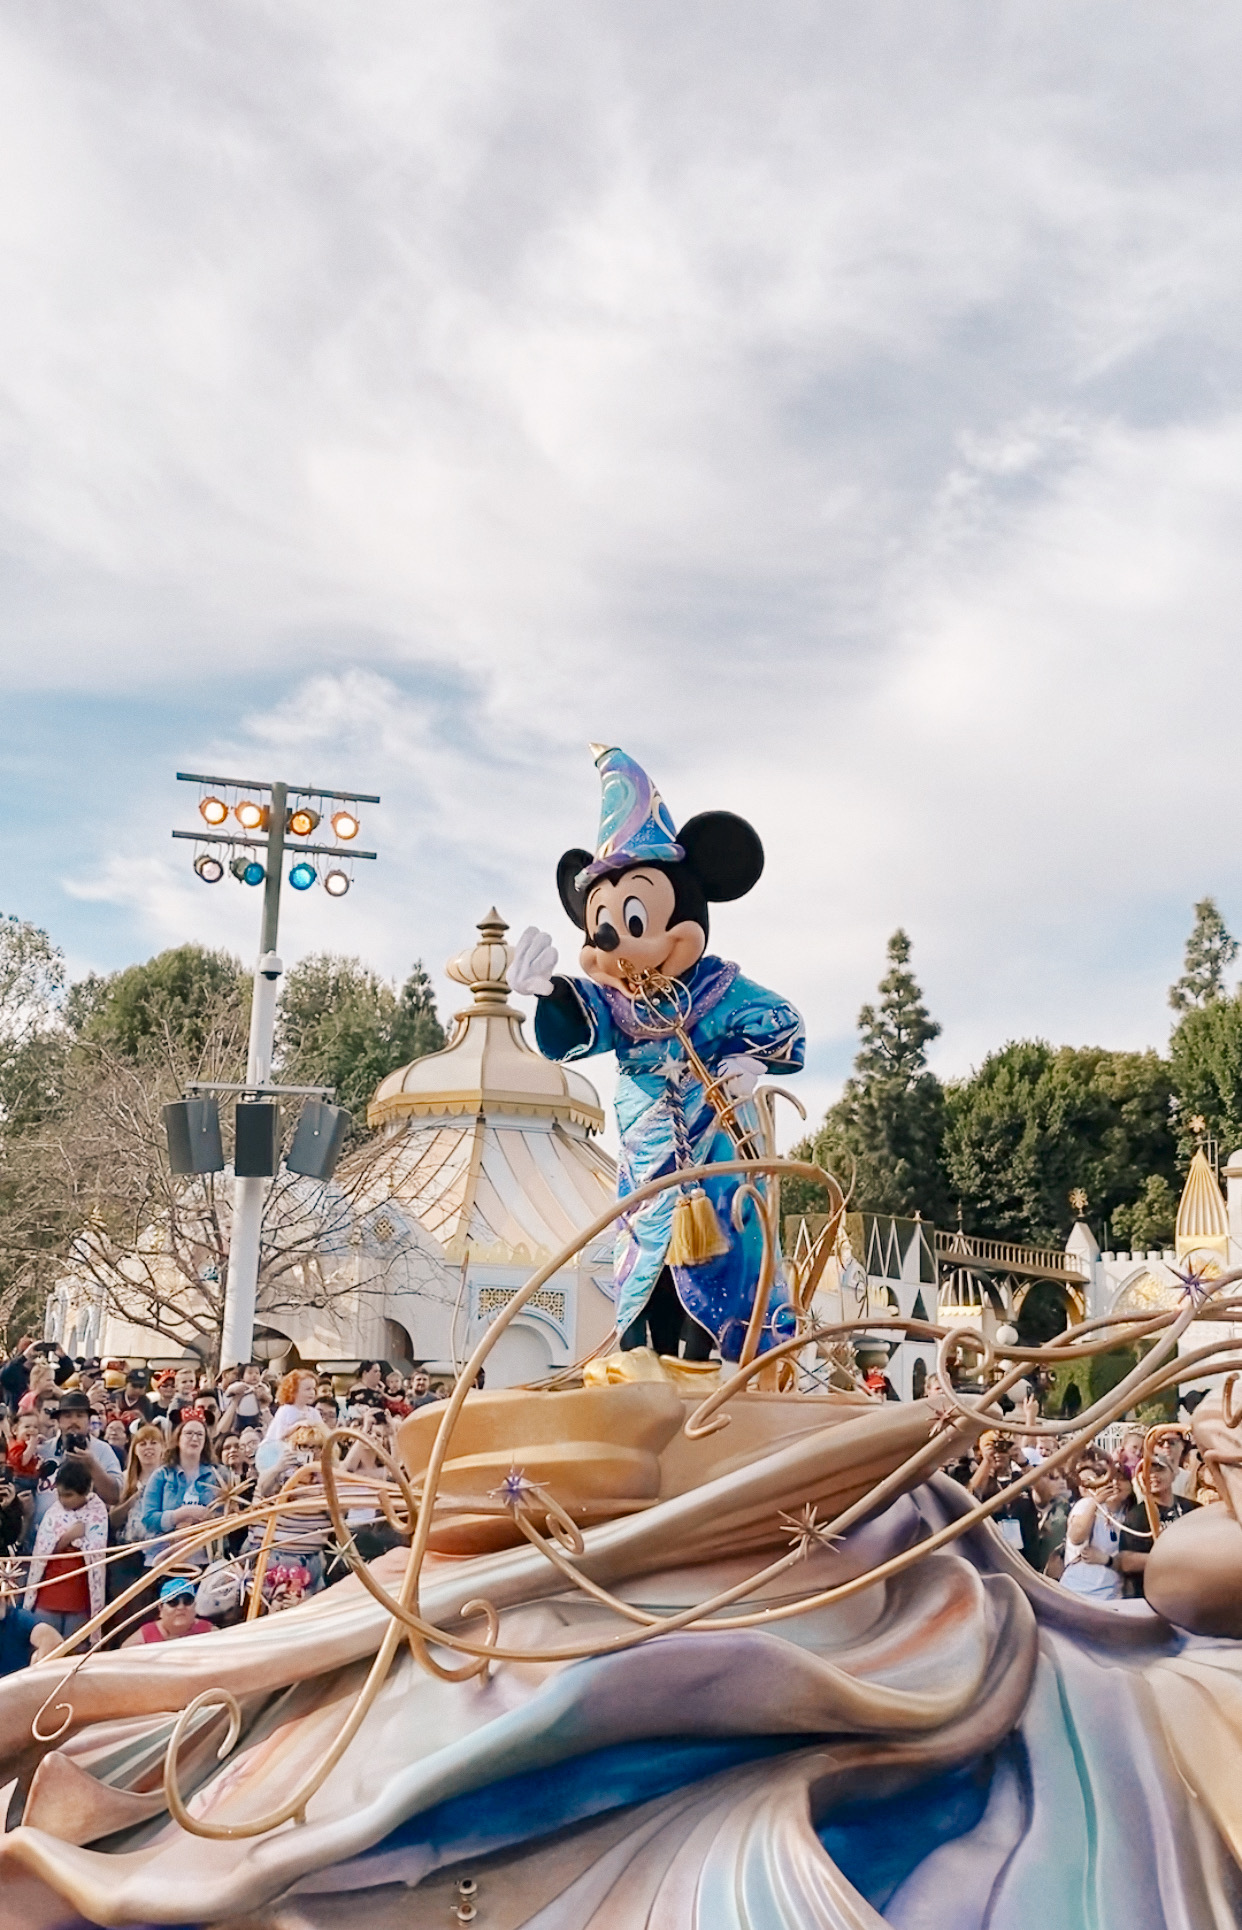 TOP 10 BEST DISNEYLAND TIPS FOR YOUR FAMILY featured by top San Diego blog, Navy Grace | Disneyland Tips by popular San Diego lifestyle blog, Navy Grace: image of Mickey Mouse on a float in a Disneyland parade.